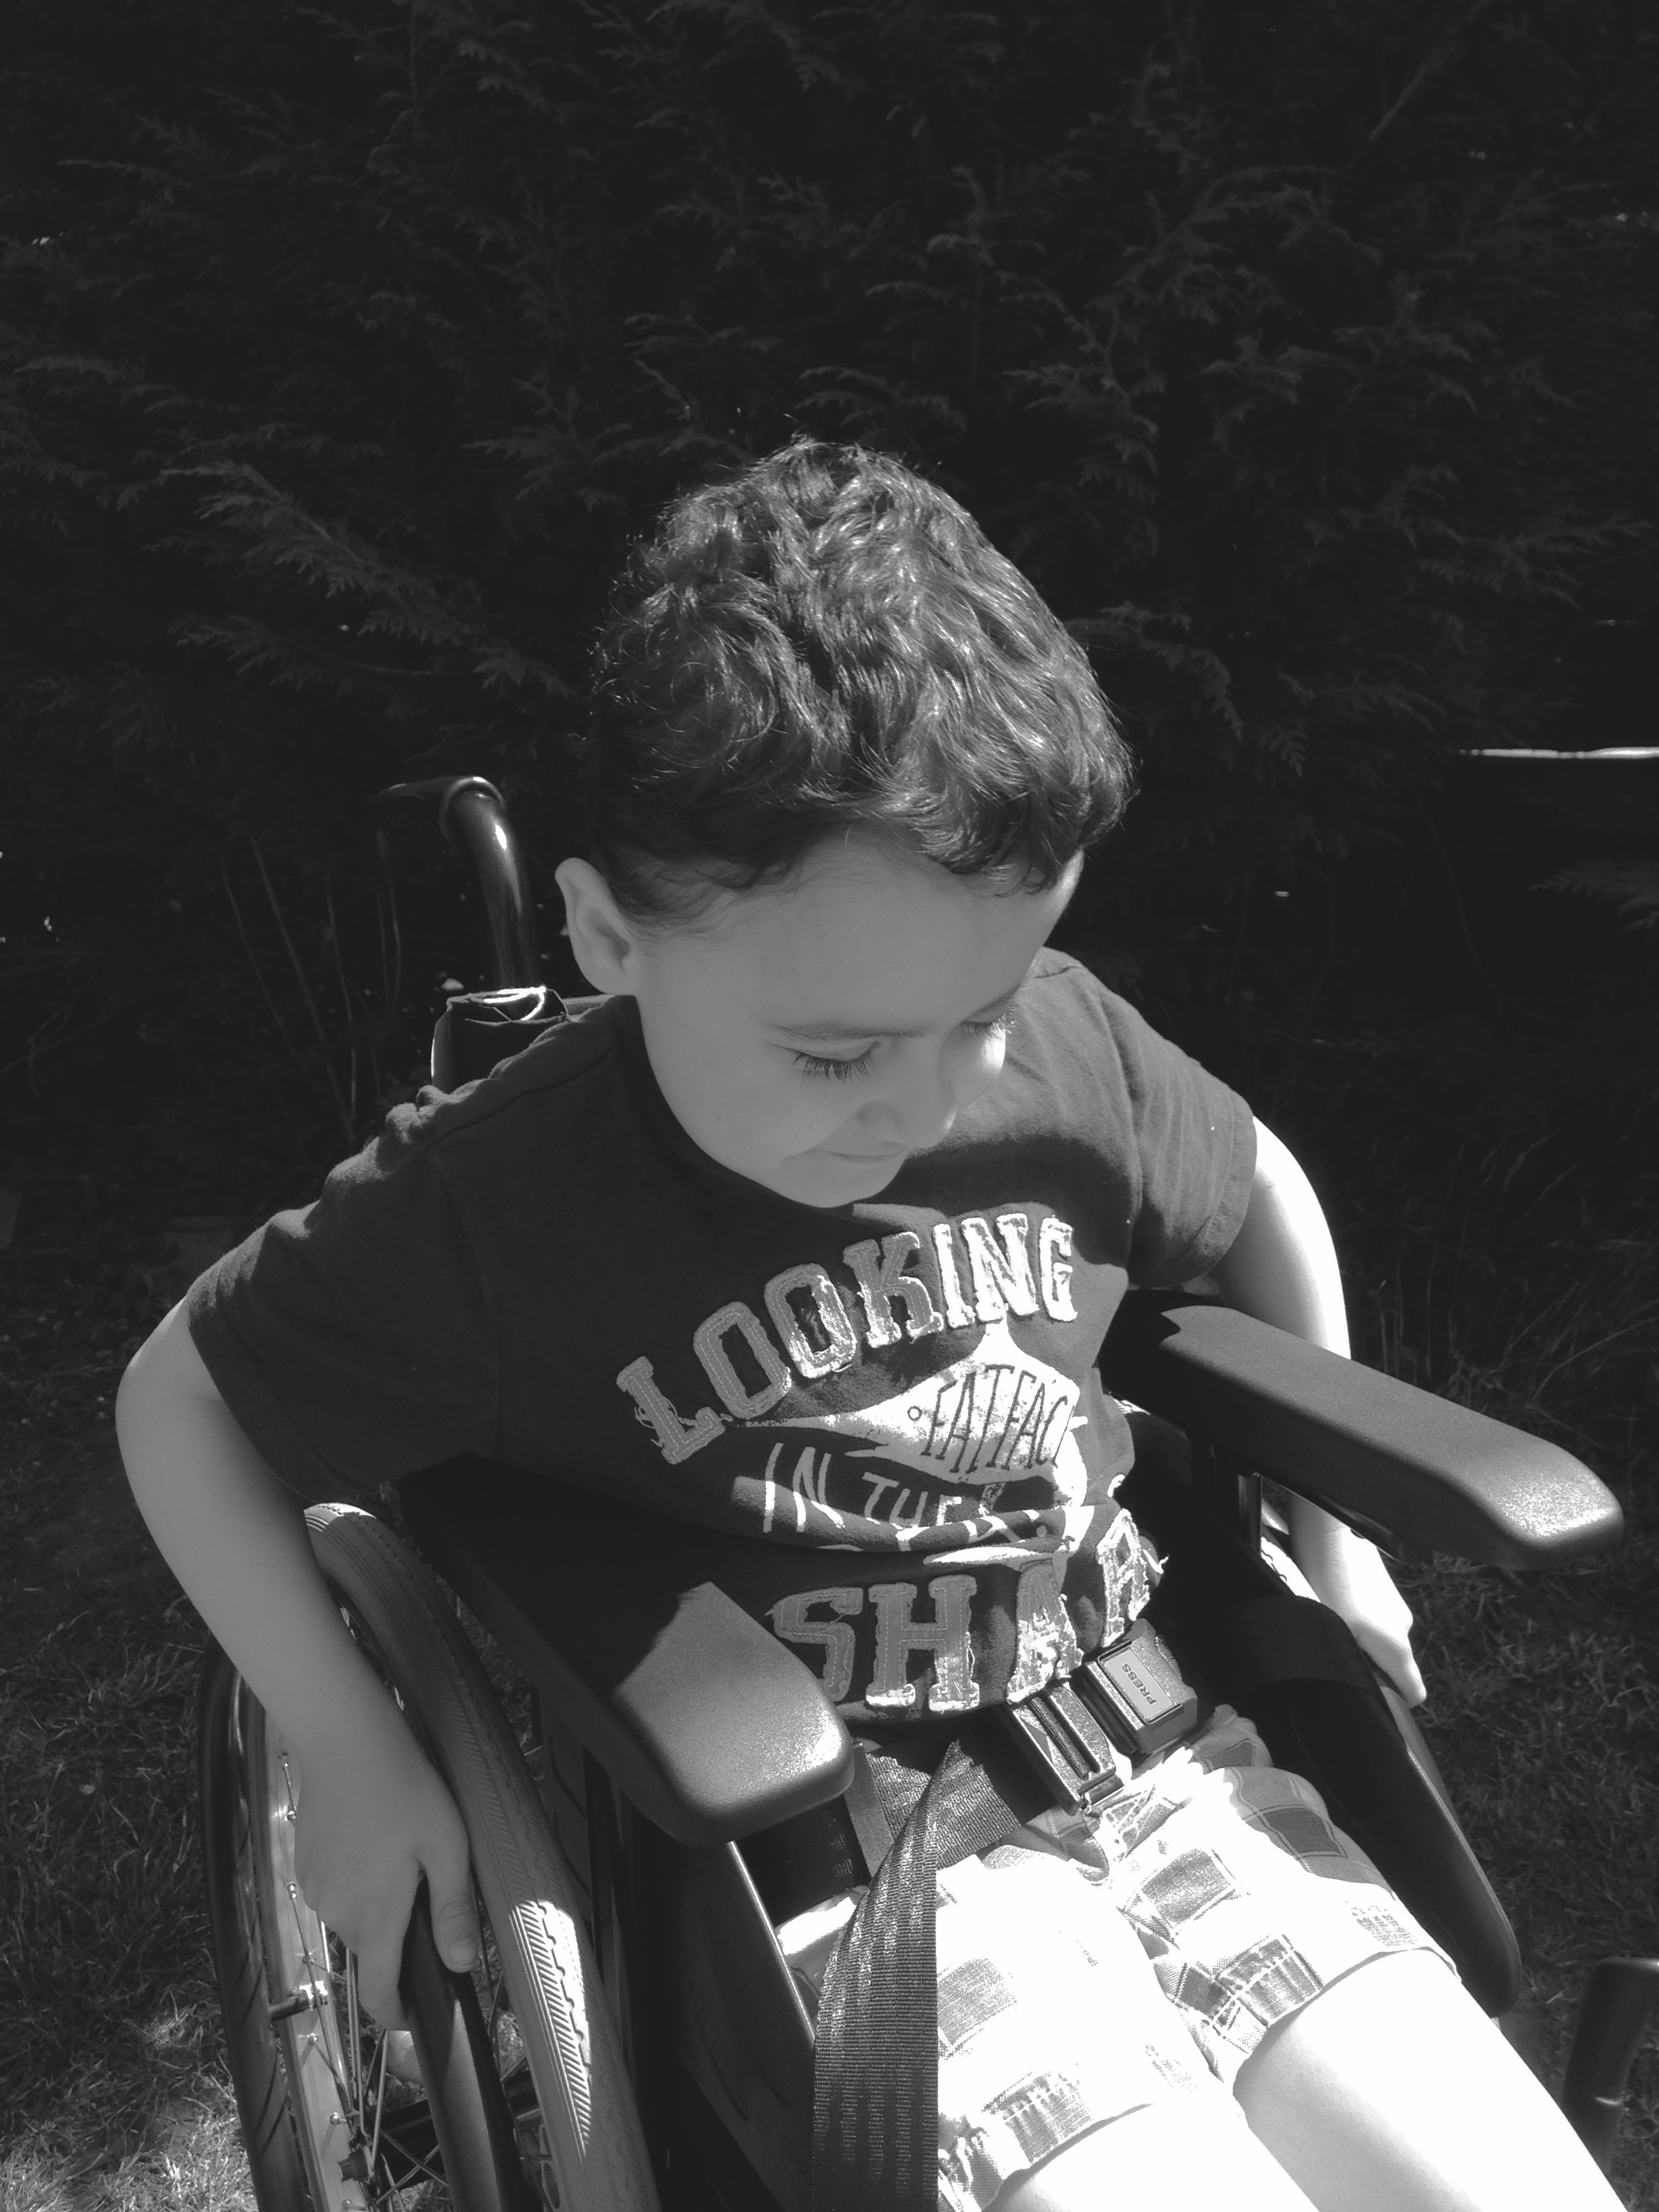 Parenting a Child With Duchenne Muscular Dystrophy | The ...